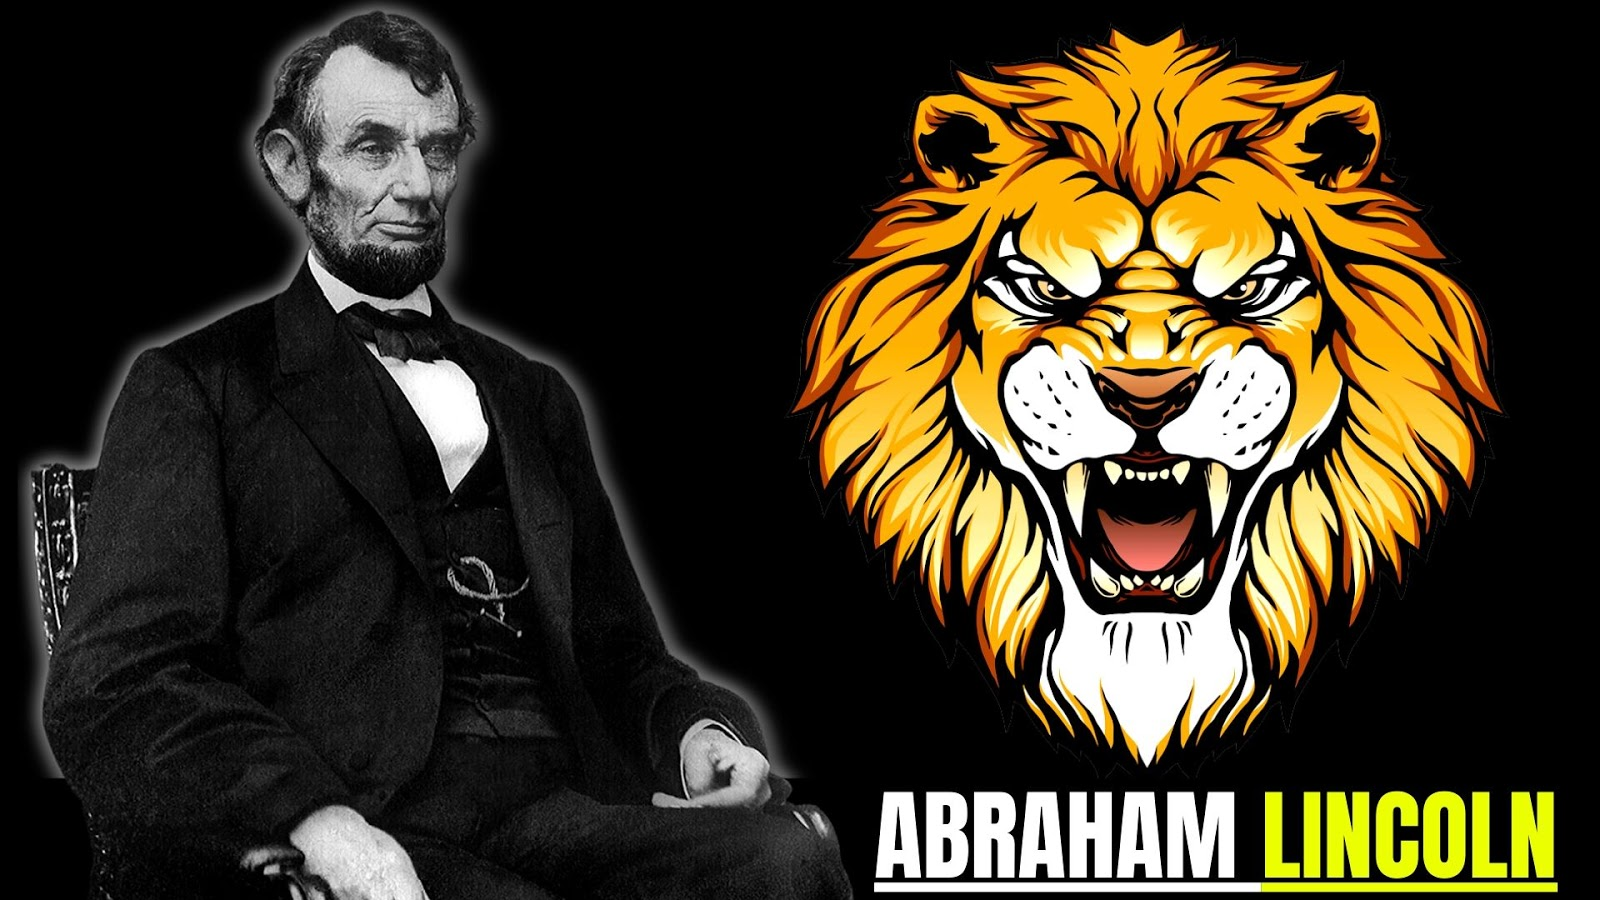 Abraham Lincoln Wallpaper with Lion